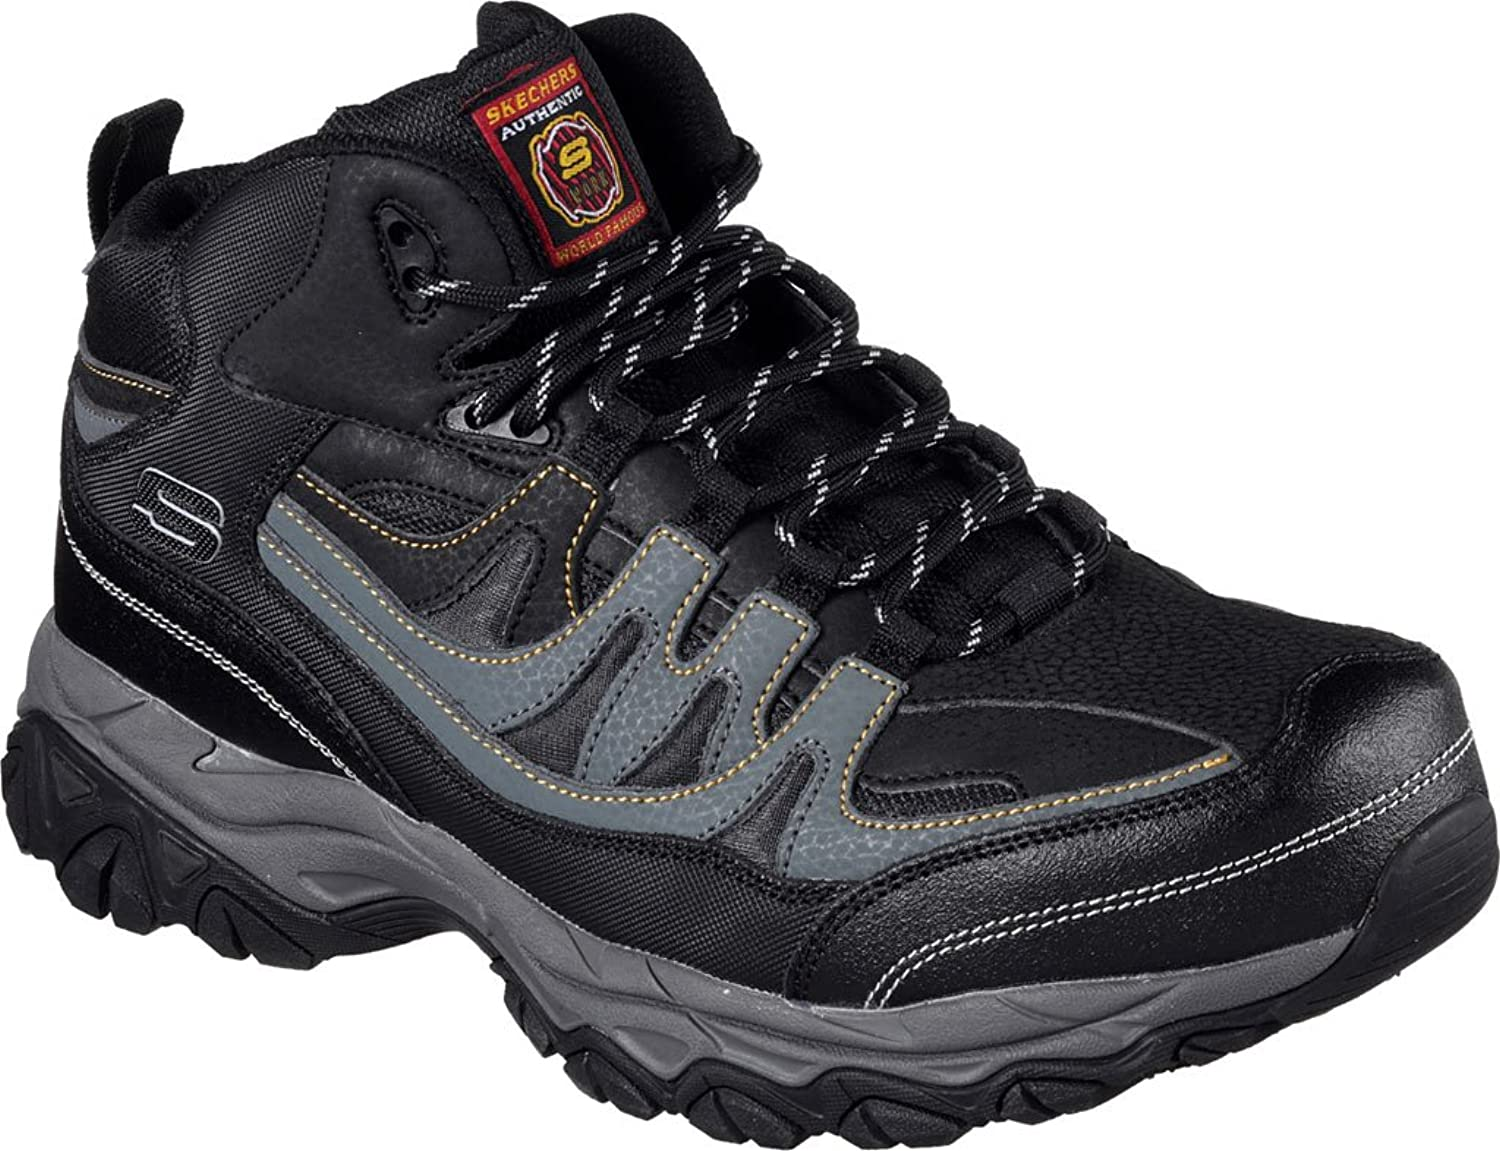 Skechers Work Work Work Relaxed Fit Holdrotge Rebem ST Mens Steel Toe Stiefel schwarz Charcoal 9.5 W e7c